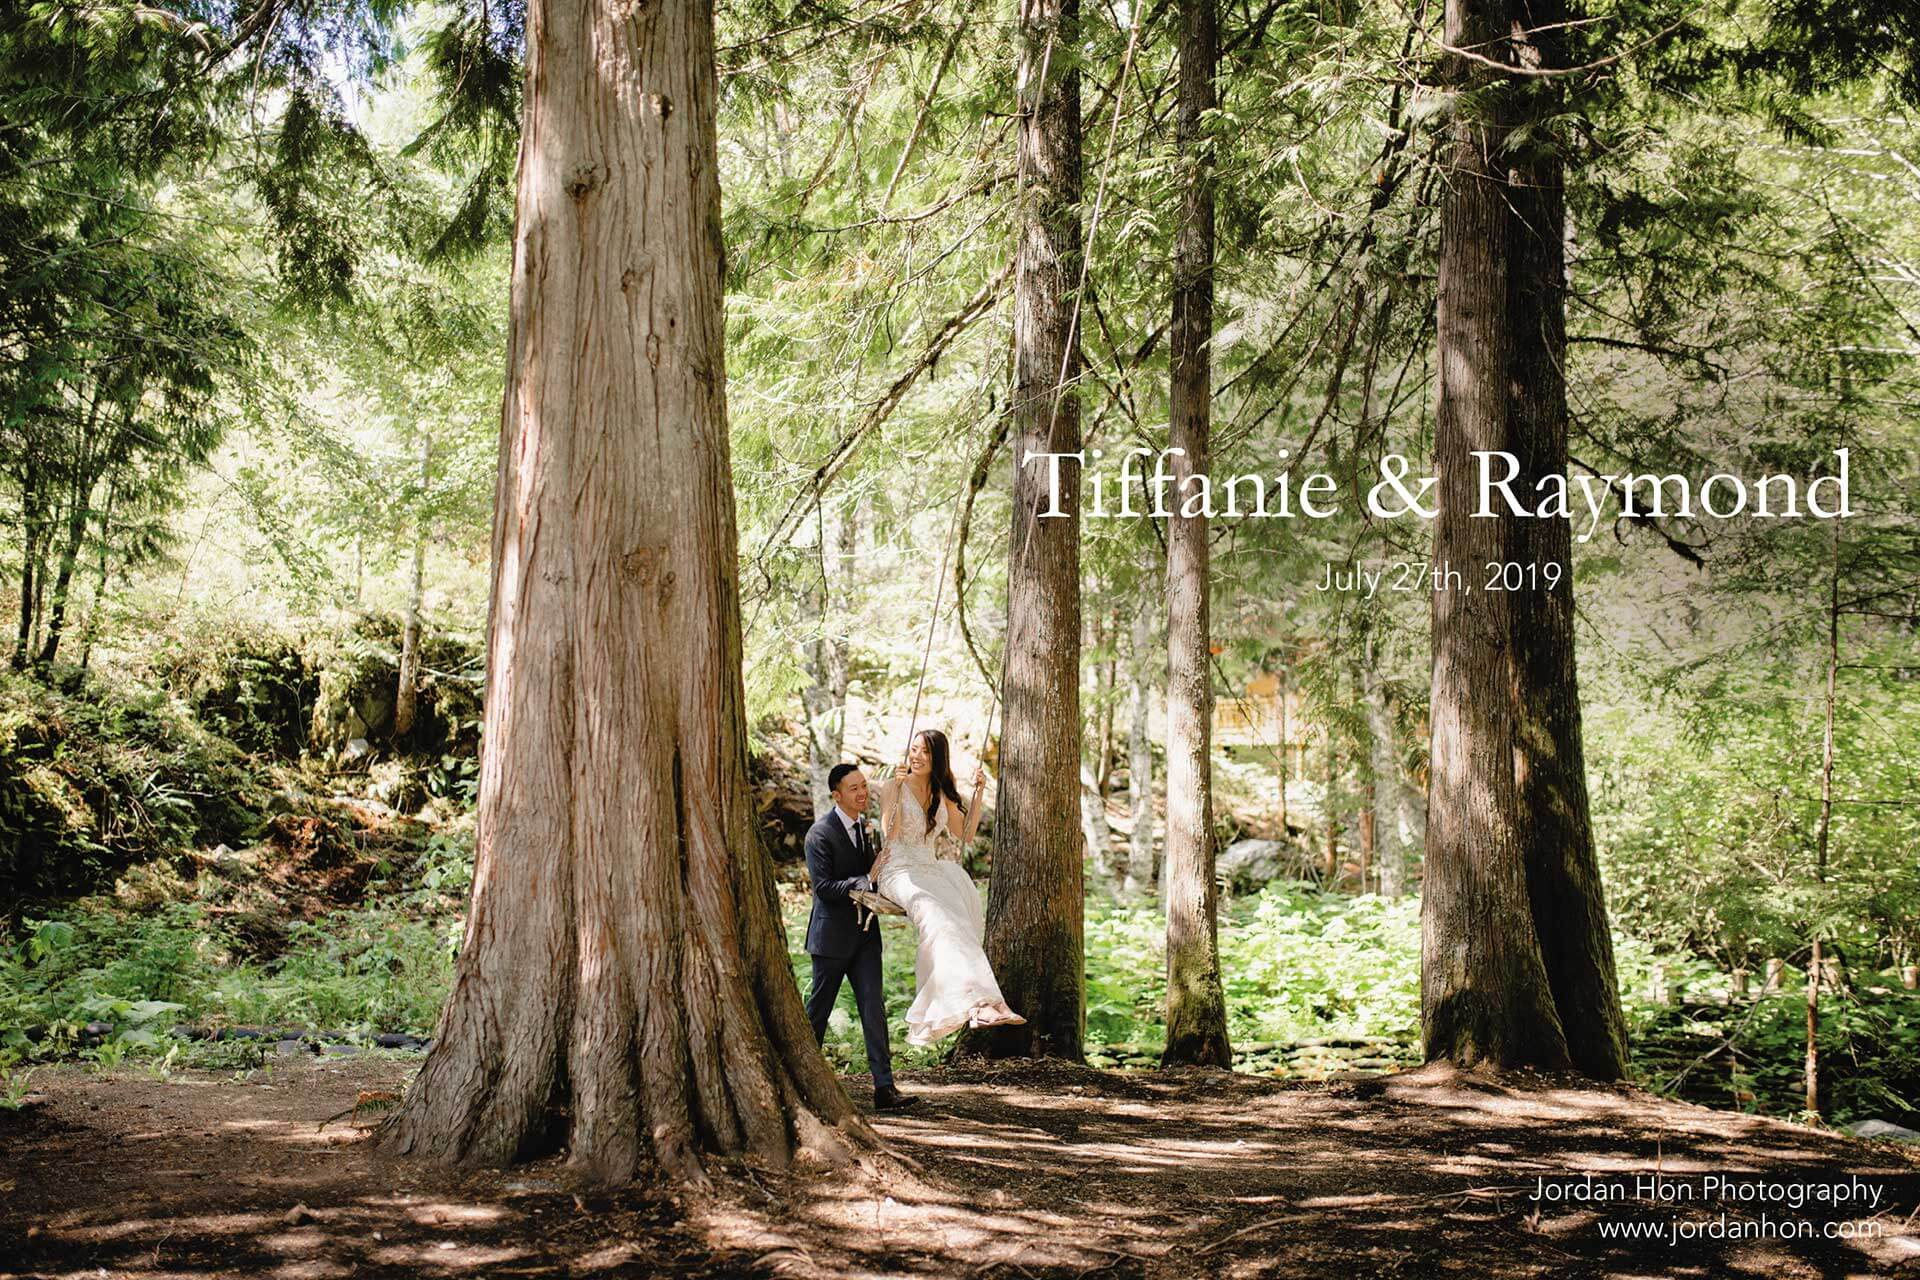 Tiffanie and Raymond's Wedding